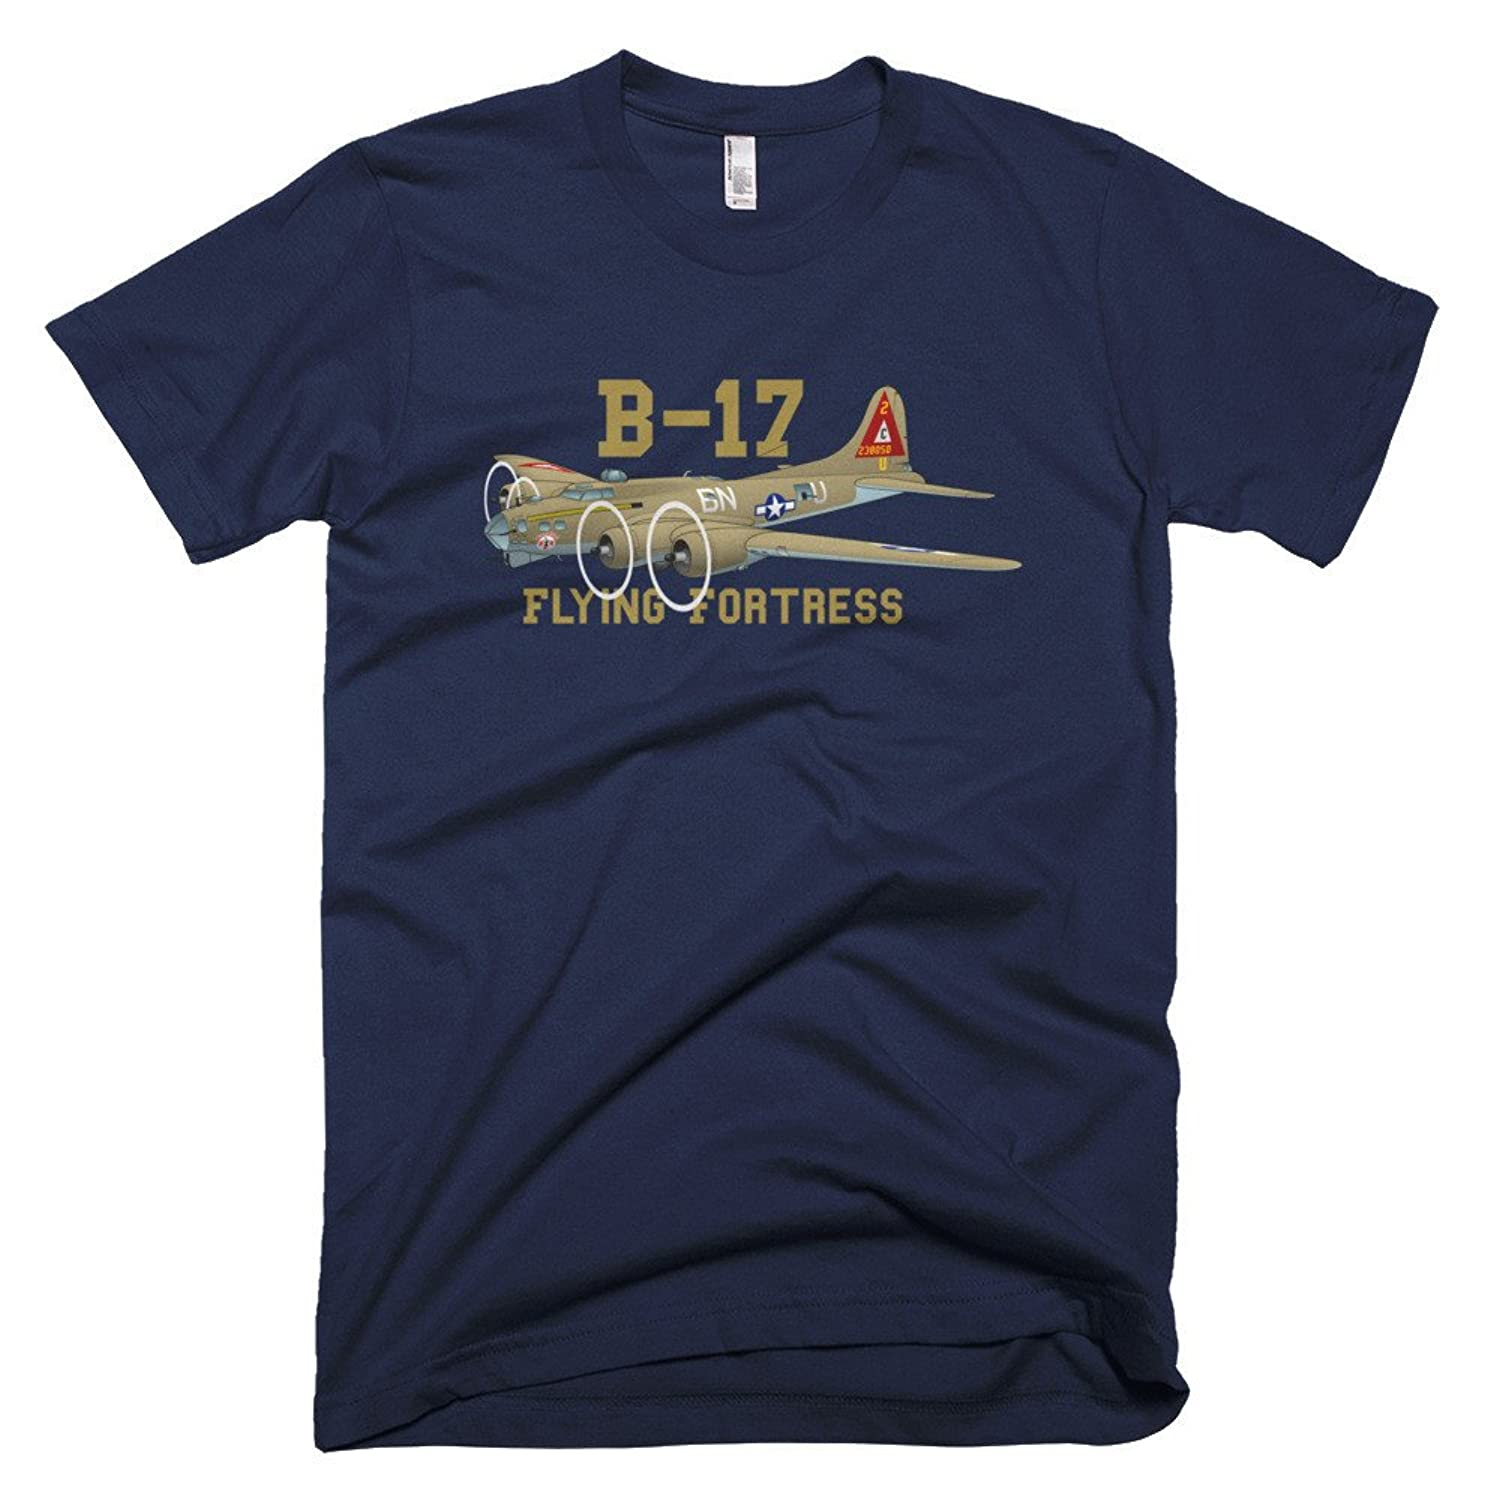 Boeing B-17 Flying Fortress Custom Airplane T-shirt - Personalized your N